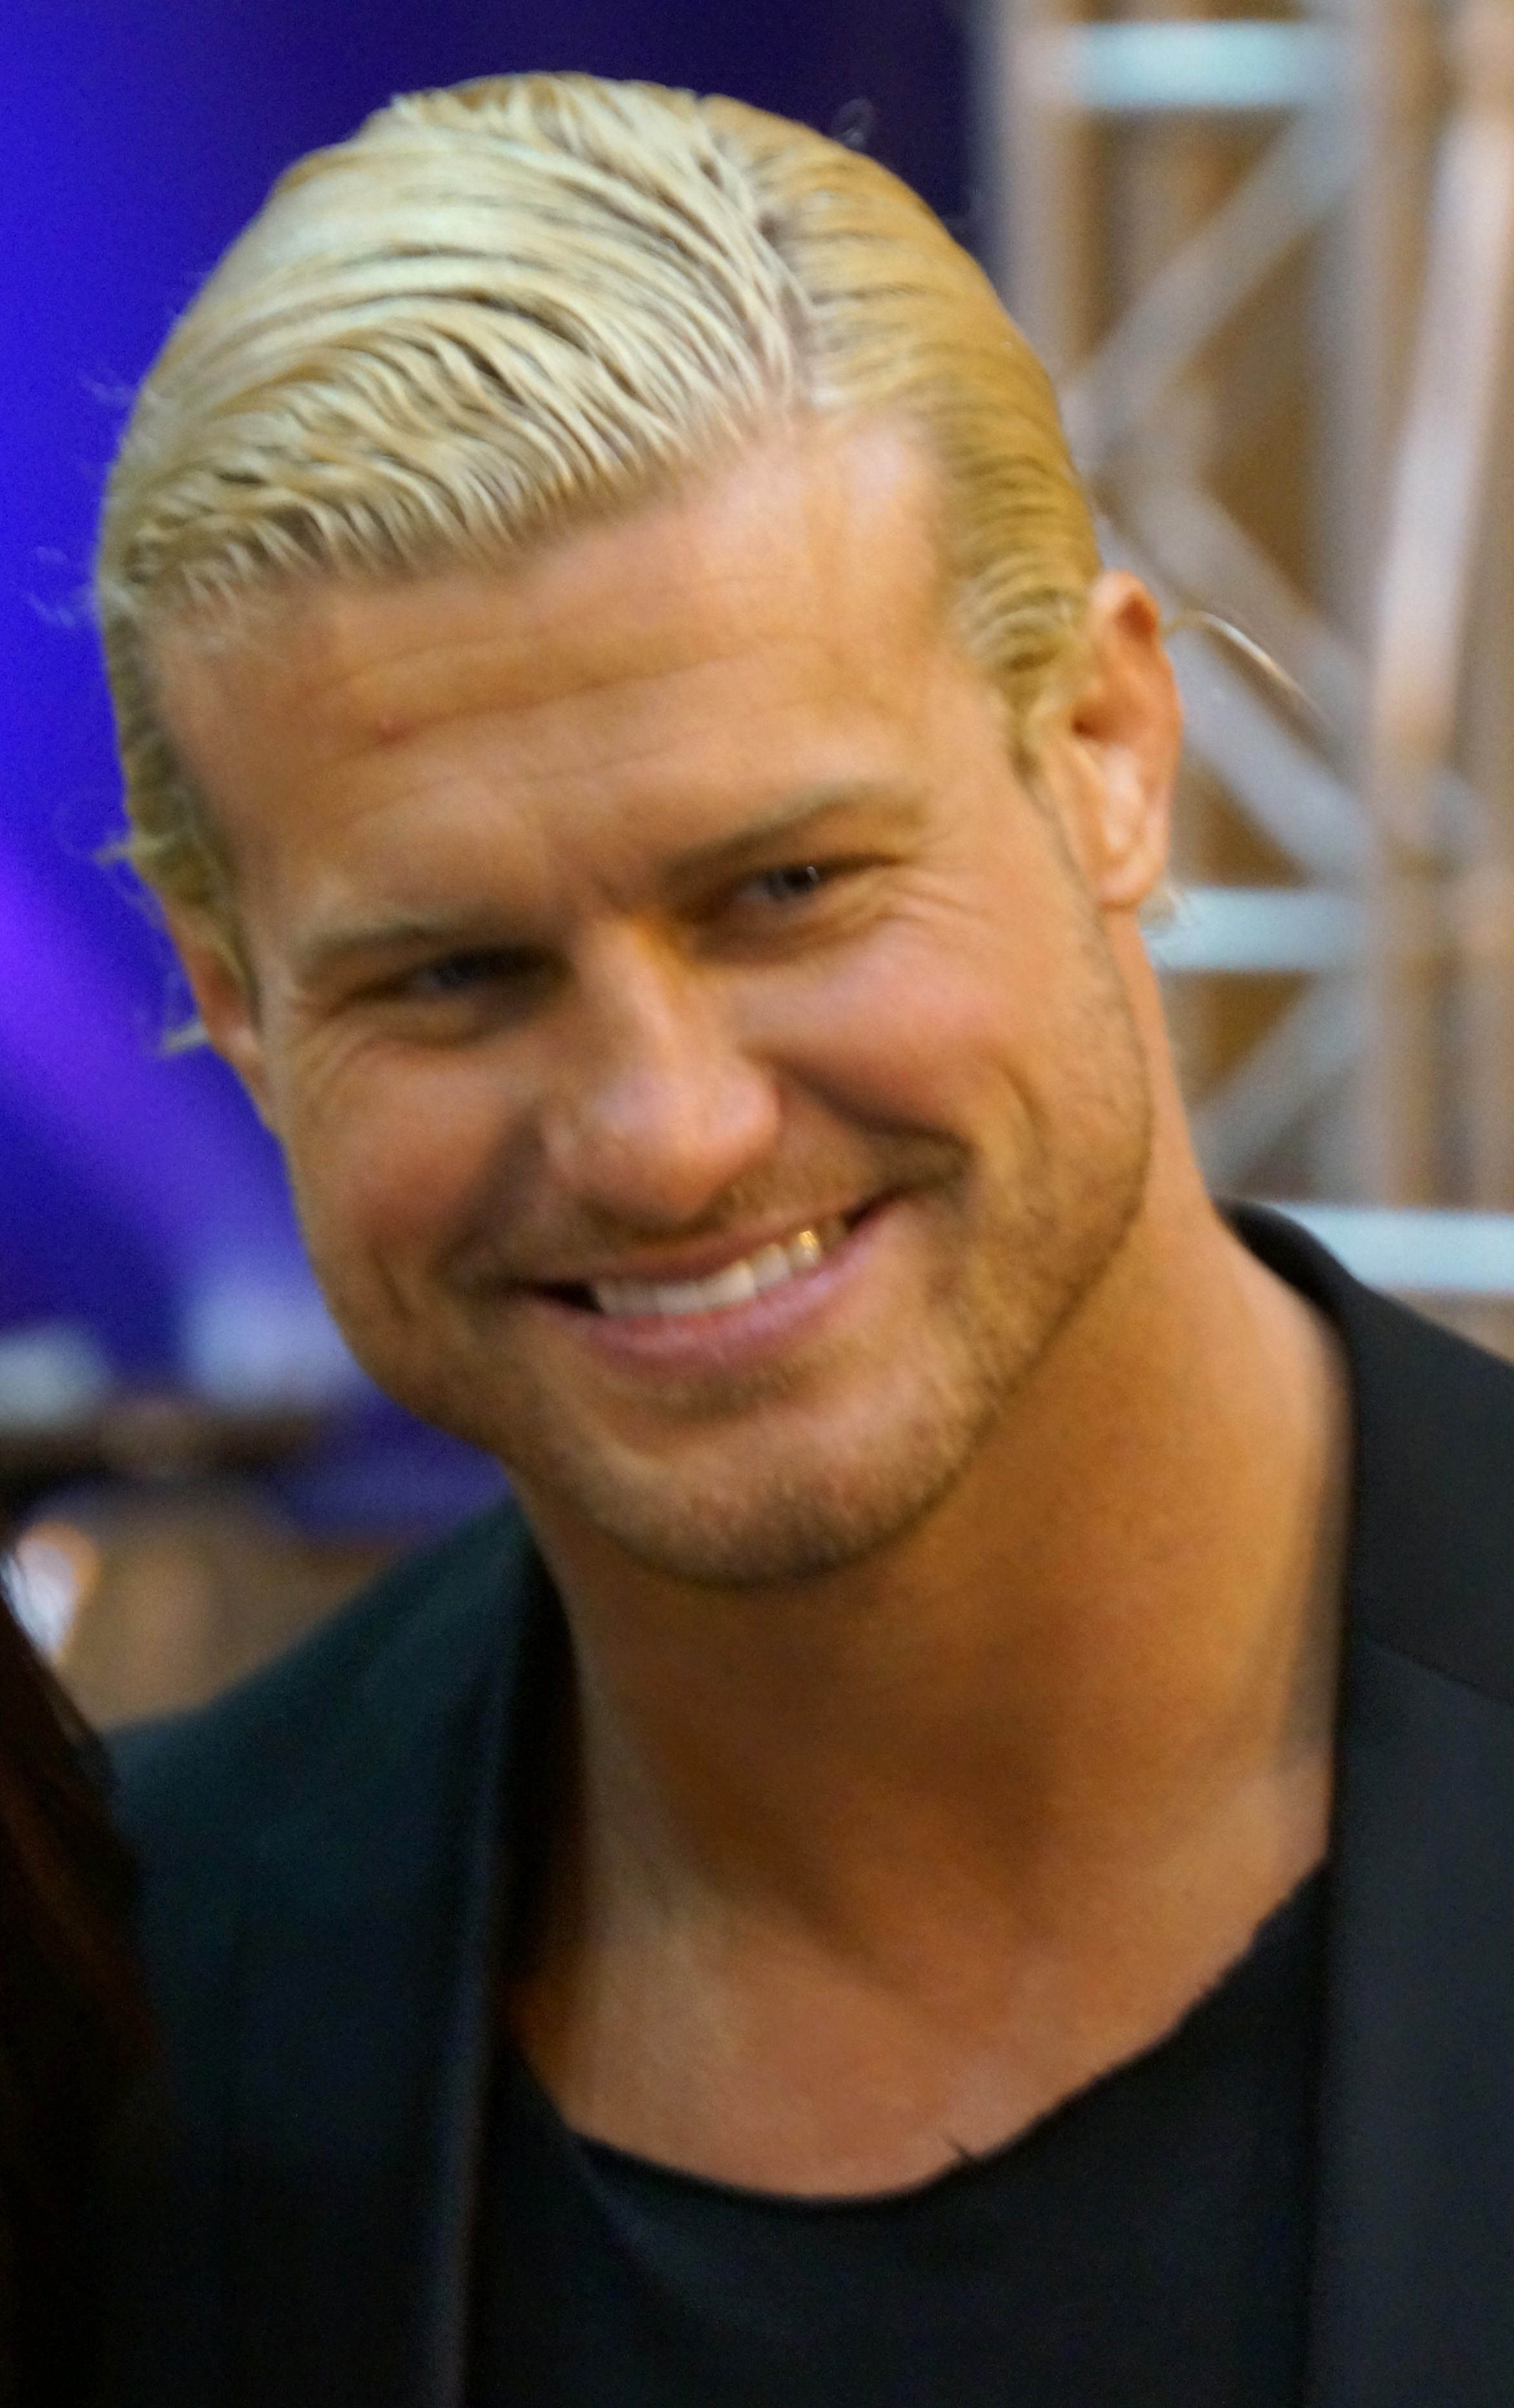 The 38-year old son of father (?) and mother(?) Dolph Ziggler in 2018 photo. Dolph Ziggler earned a  million dollar salary - leaving the net worth at 3 million in 2018